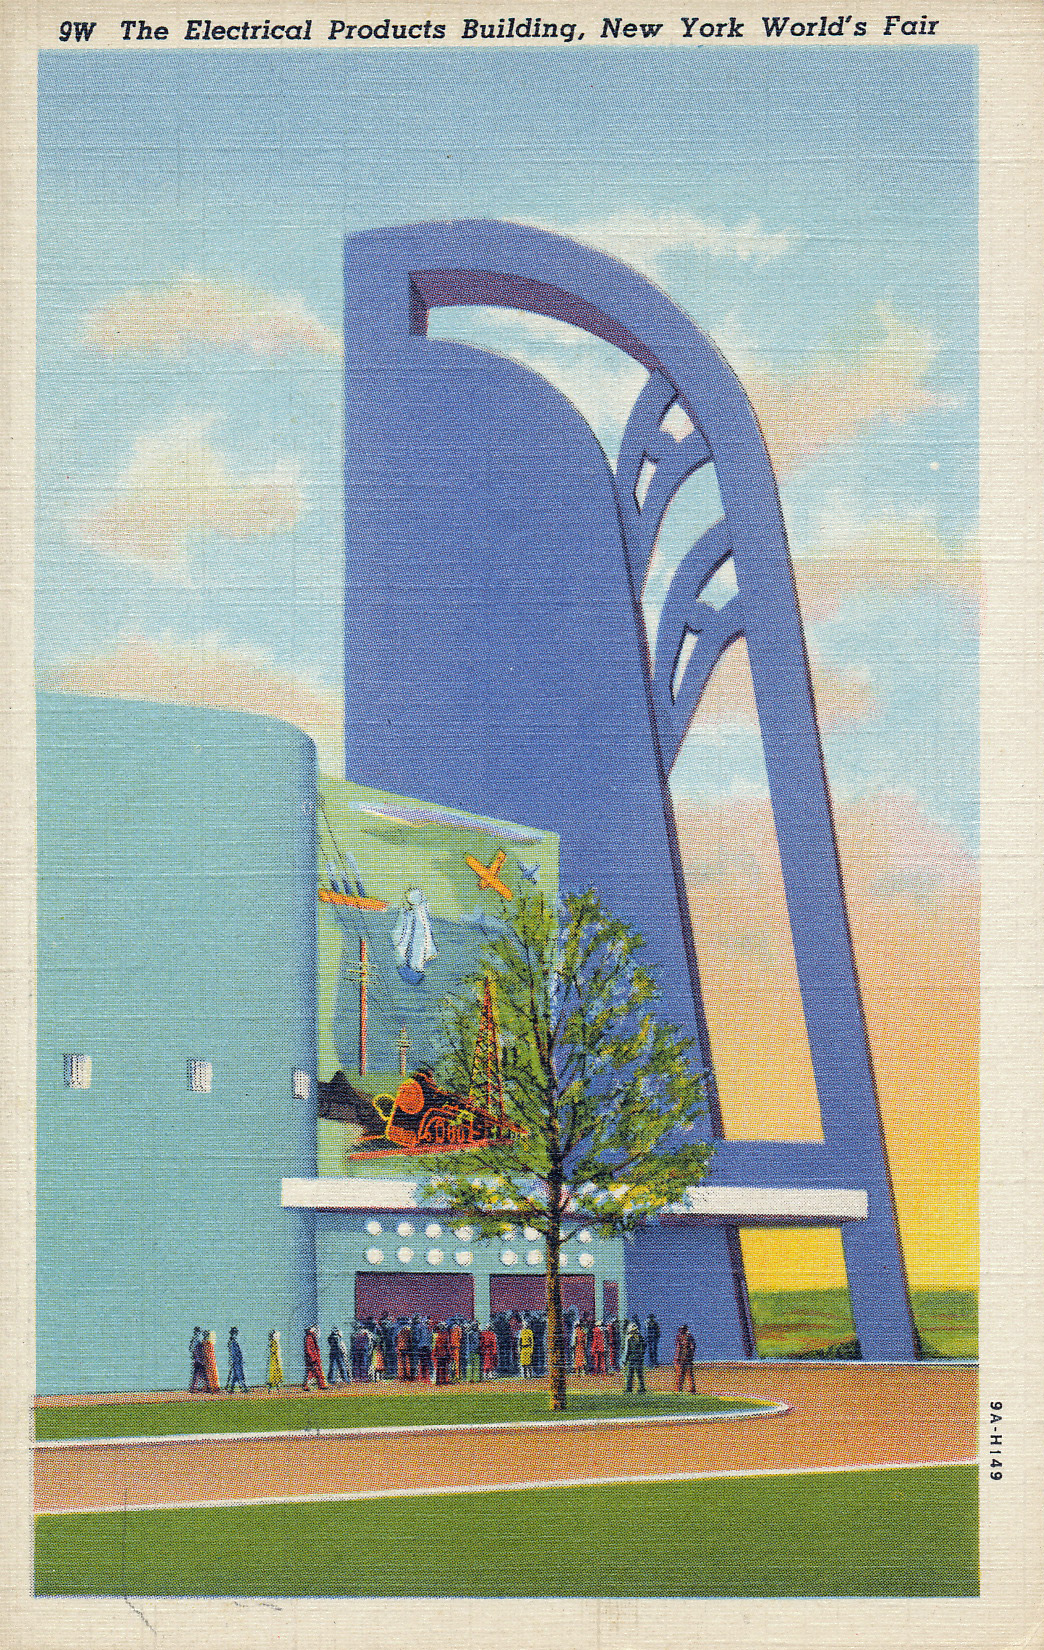 http://jrandomimage.com/images/worlds-fair-1939-electrical-products.jpg